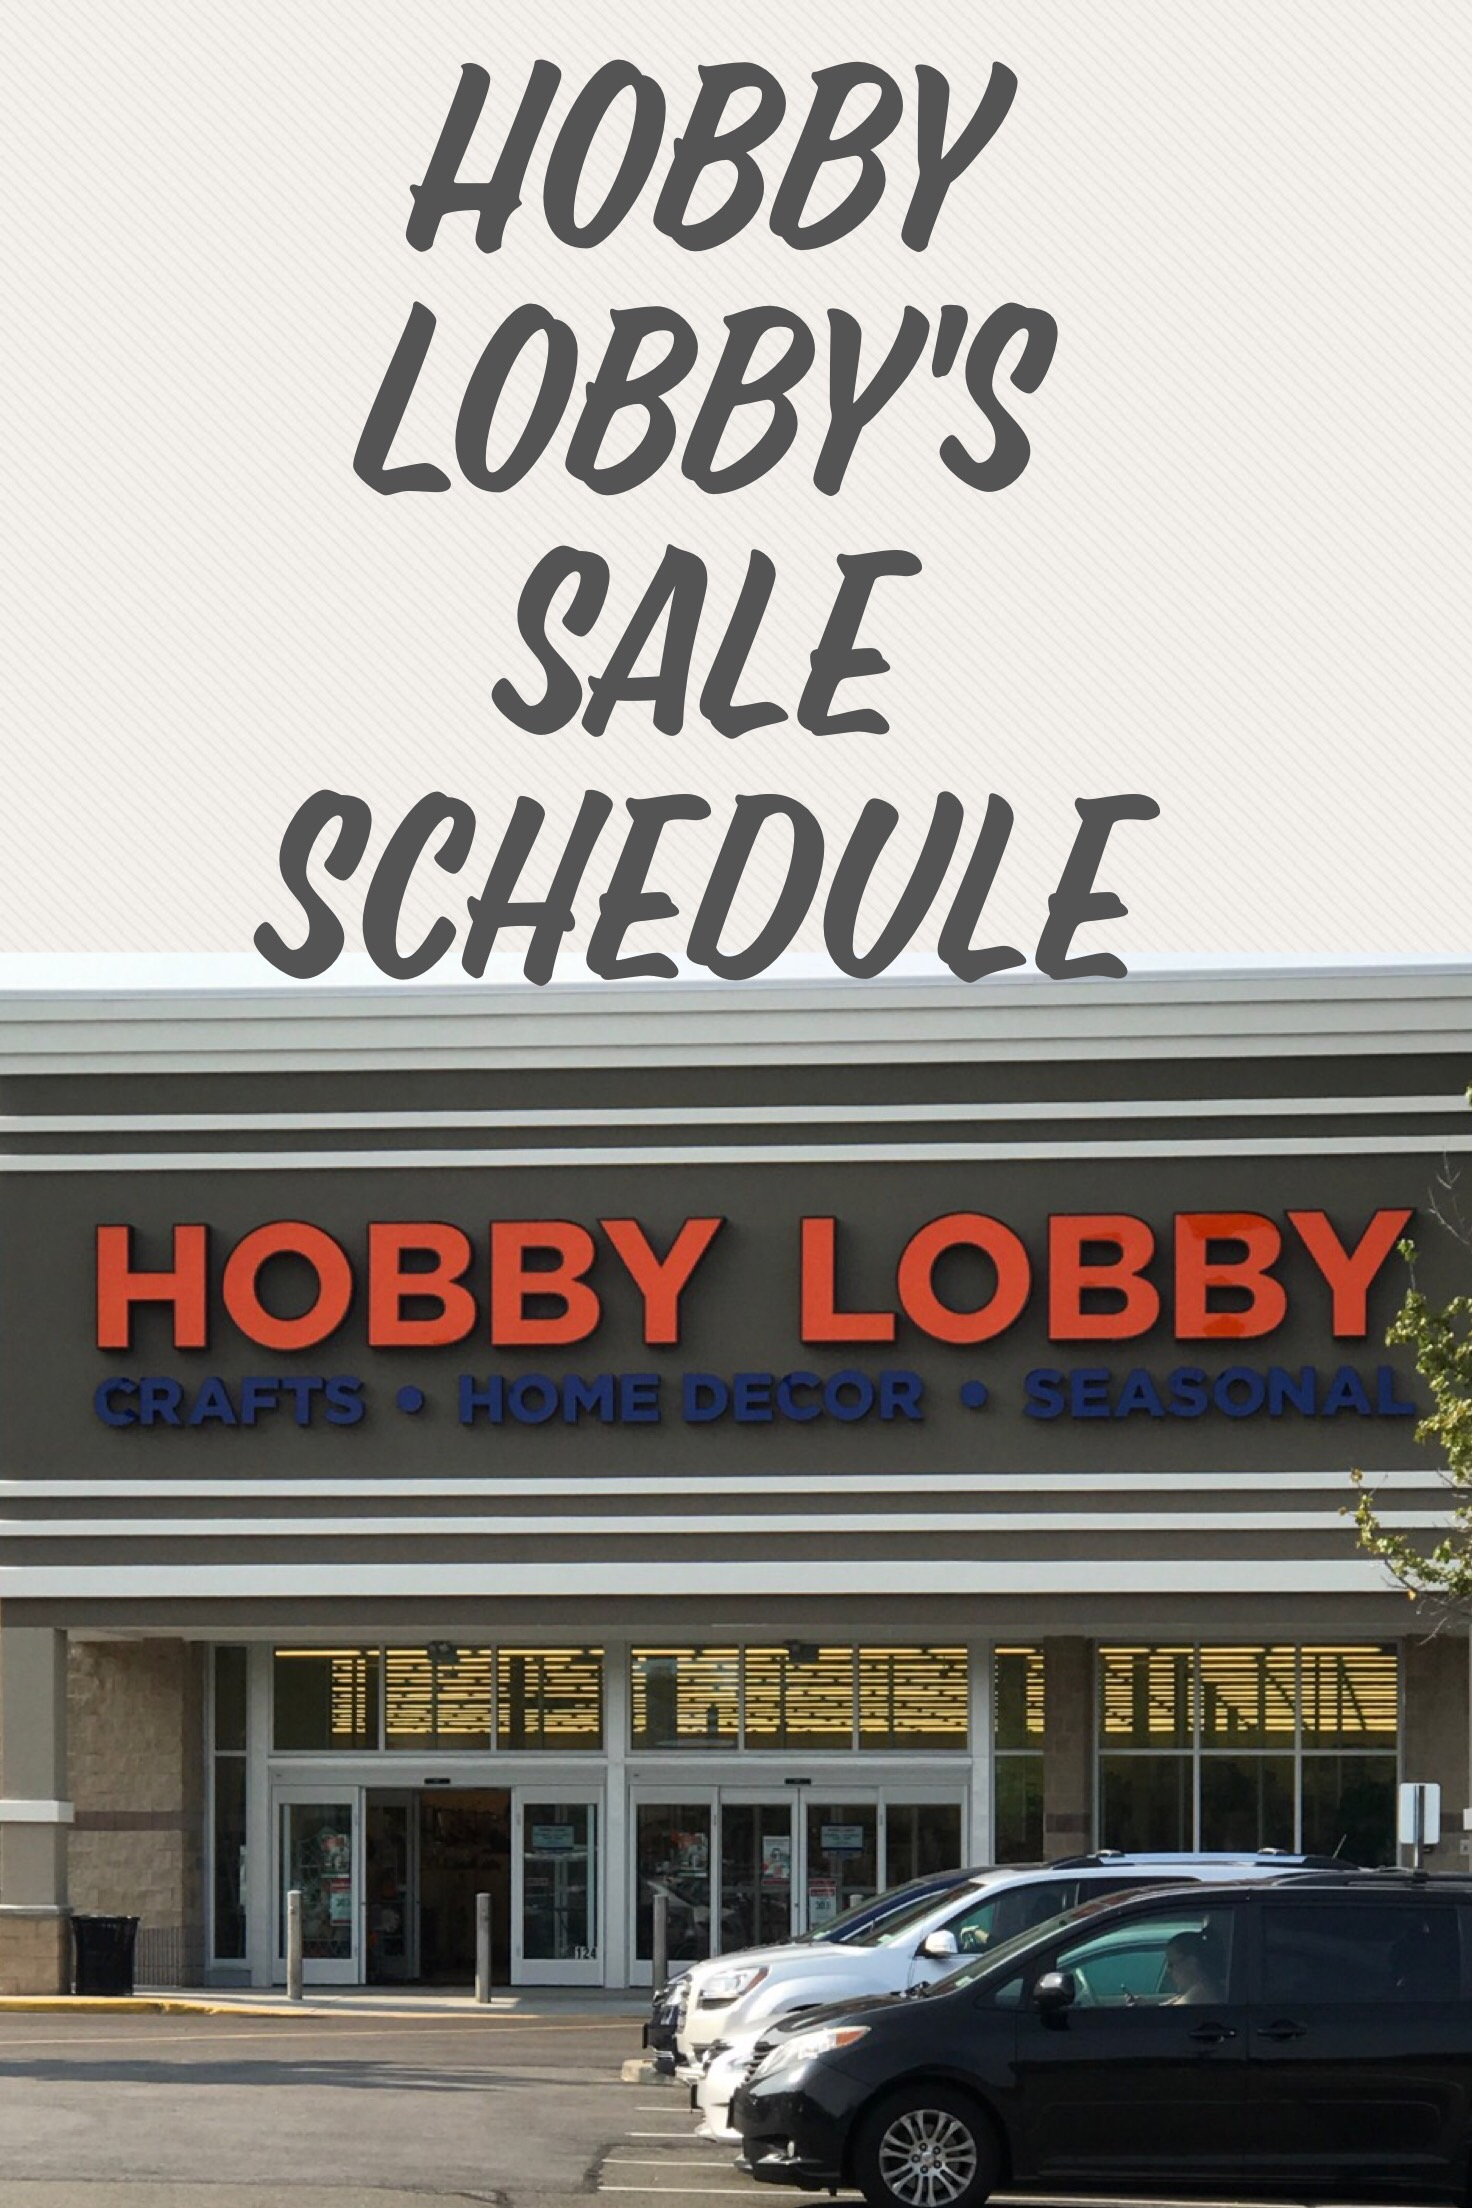 Hobby Lobby's Sale Schedule - Frugally Fantastic on Hobby Lobby Online Shopping id=79307